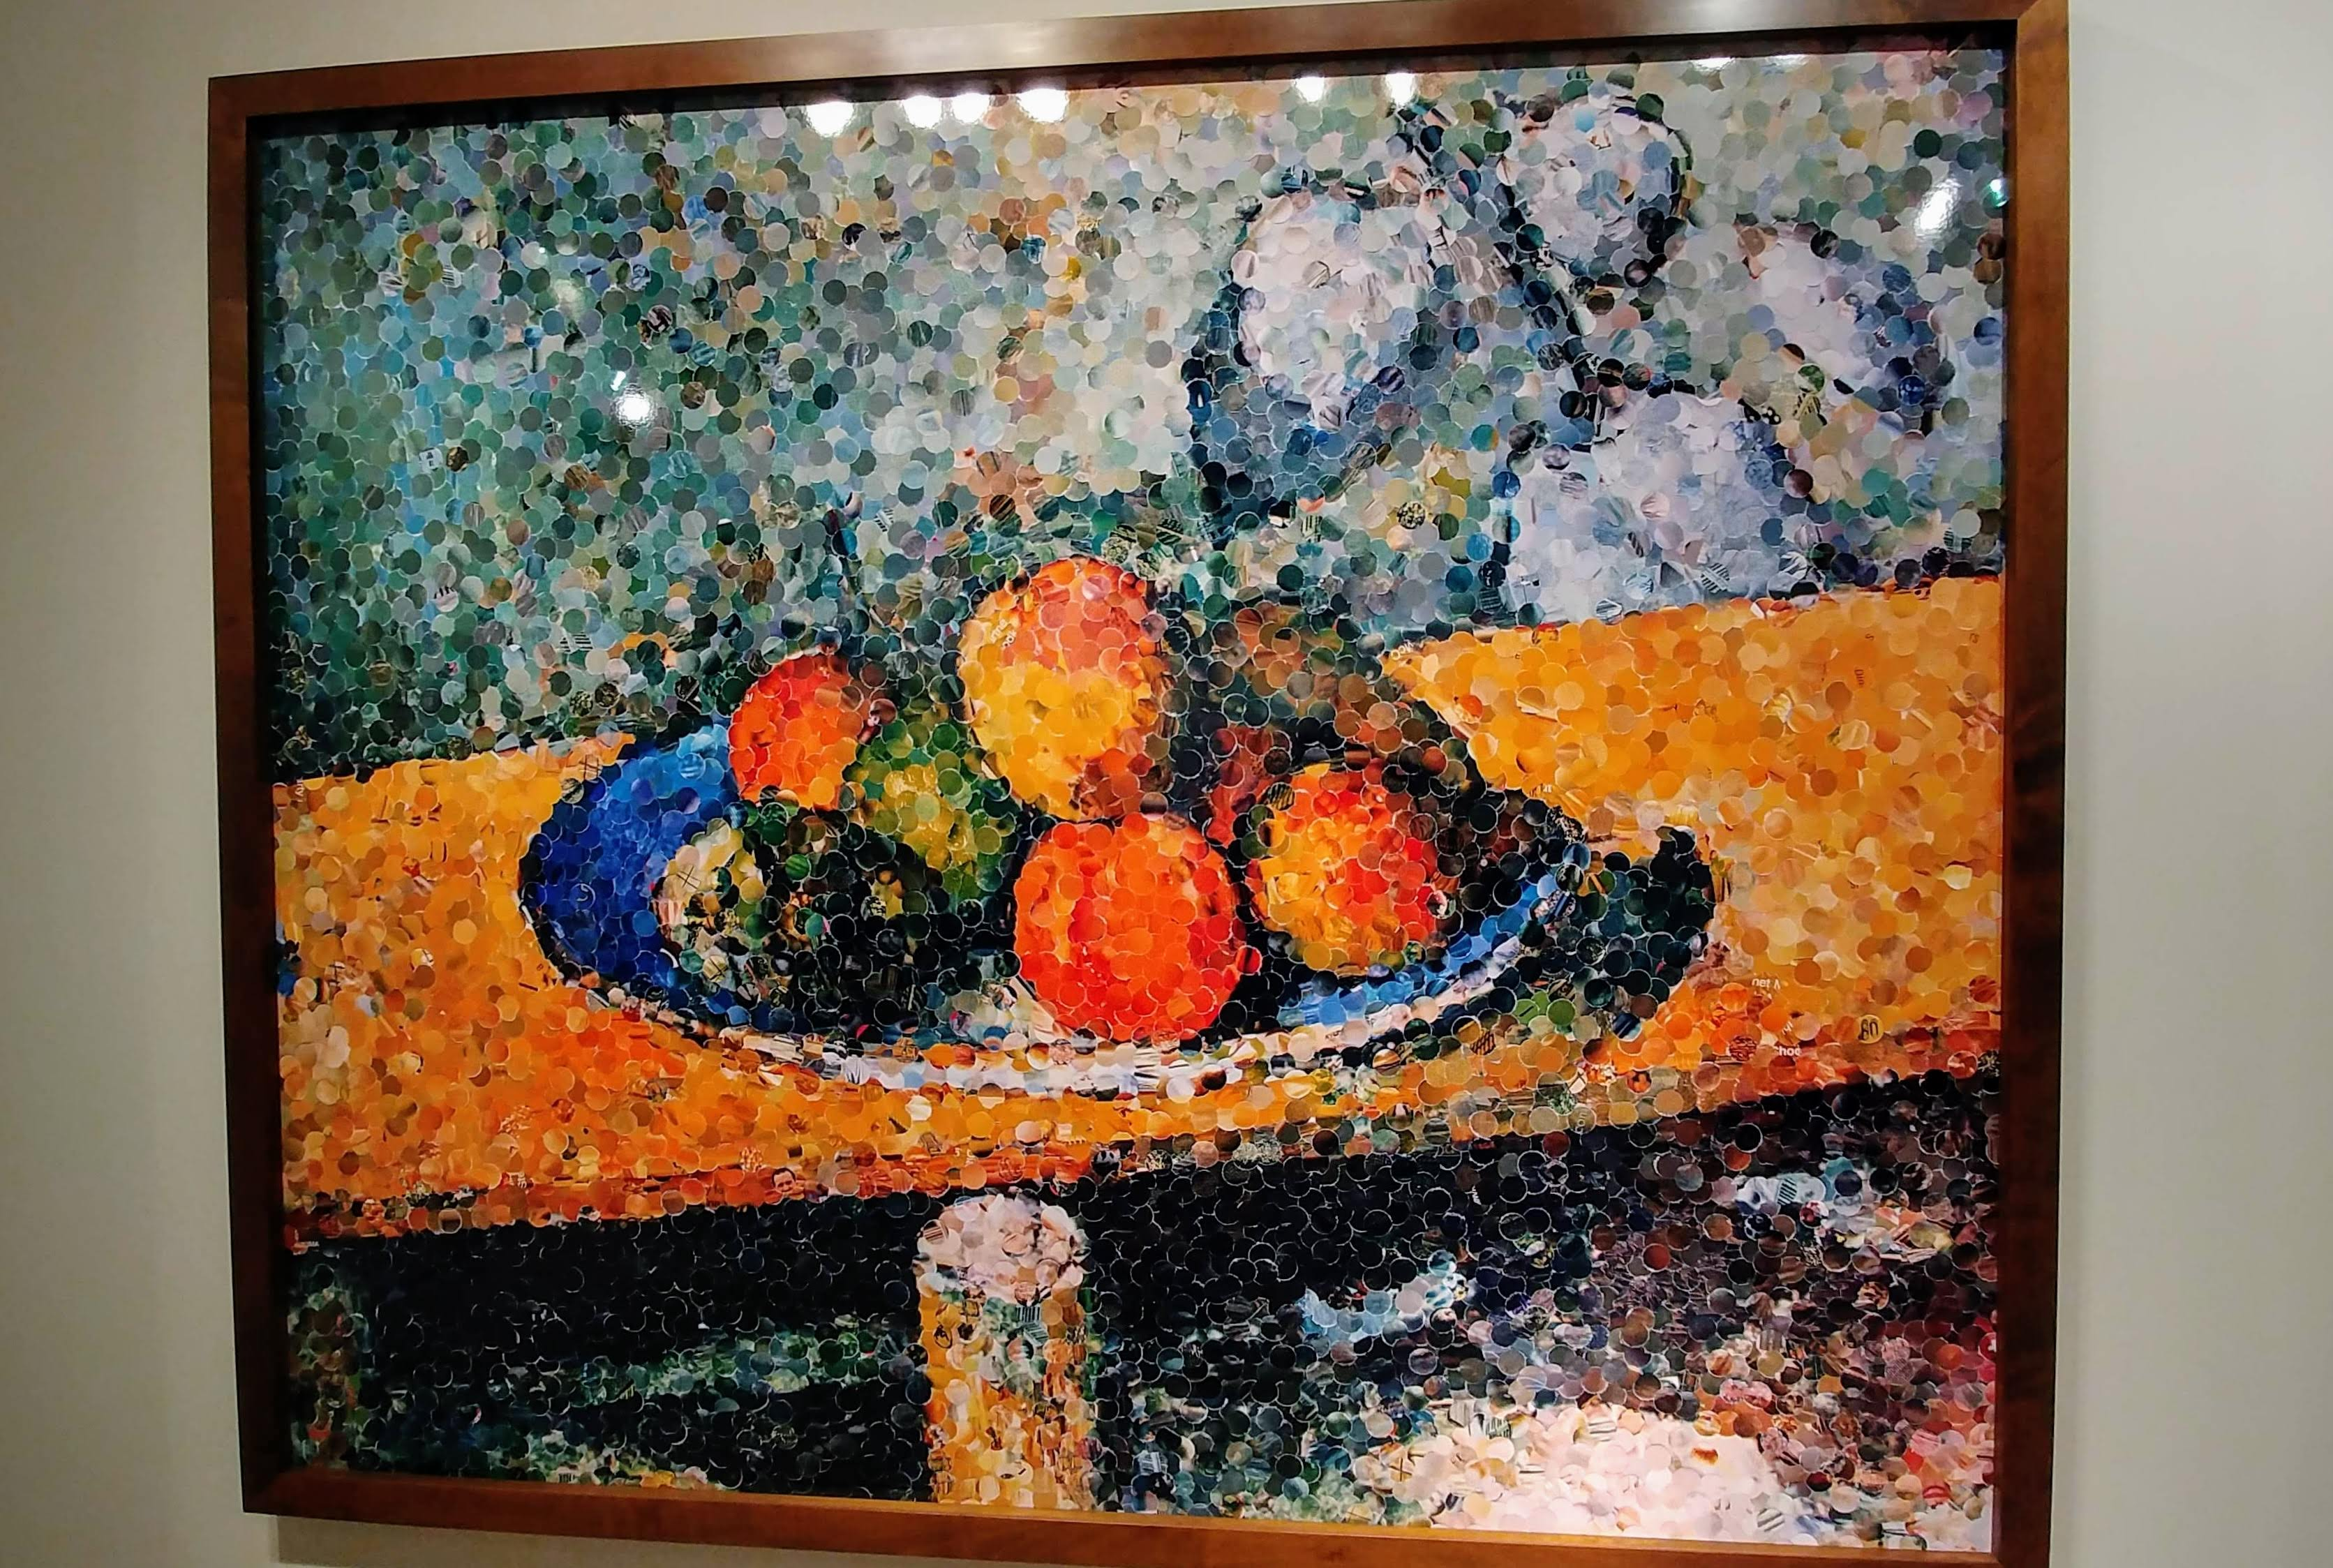 Apples, Peaches, Pears, and Grapes, After Cezanne, 2003 ©Vik Muniz with Rhona Hoffman Gallery, Chicago.